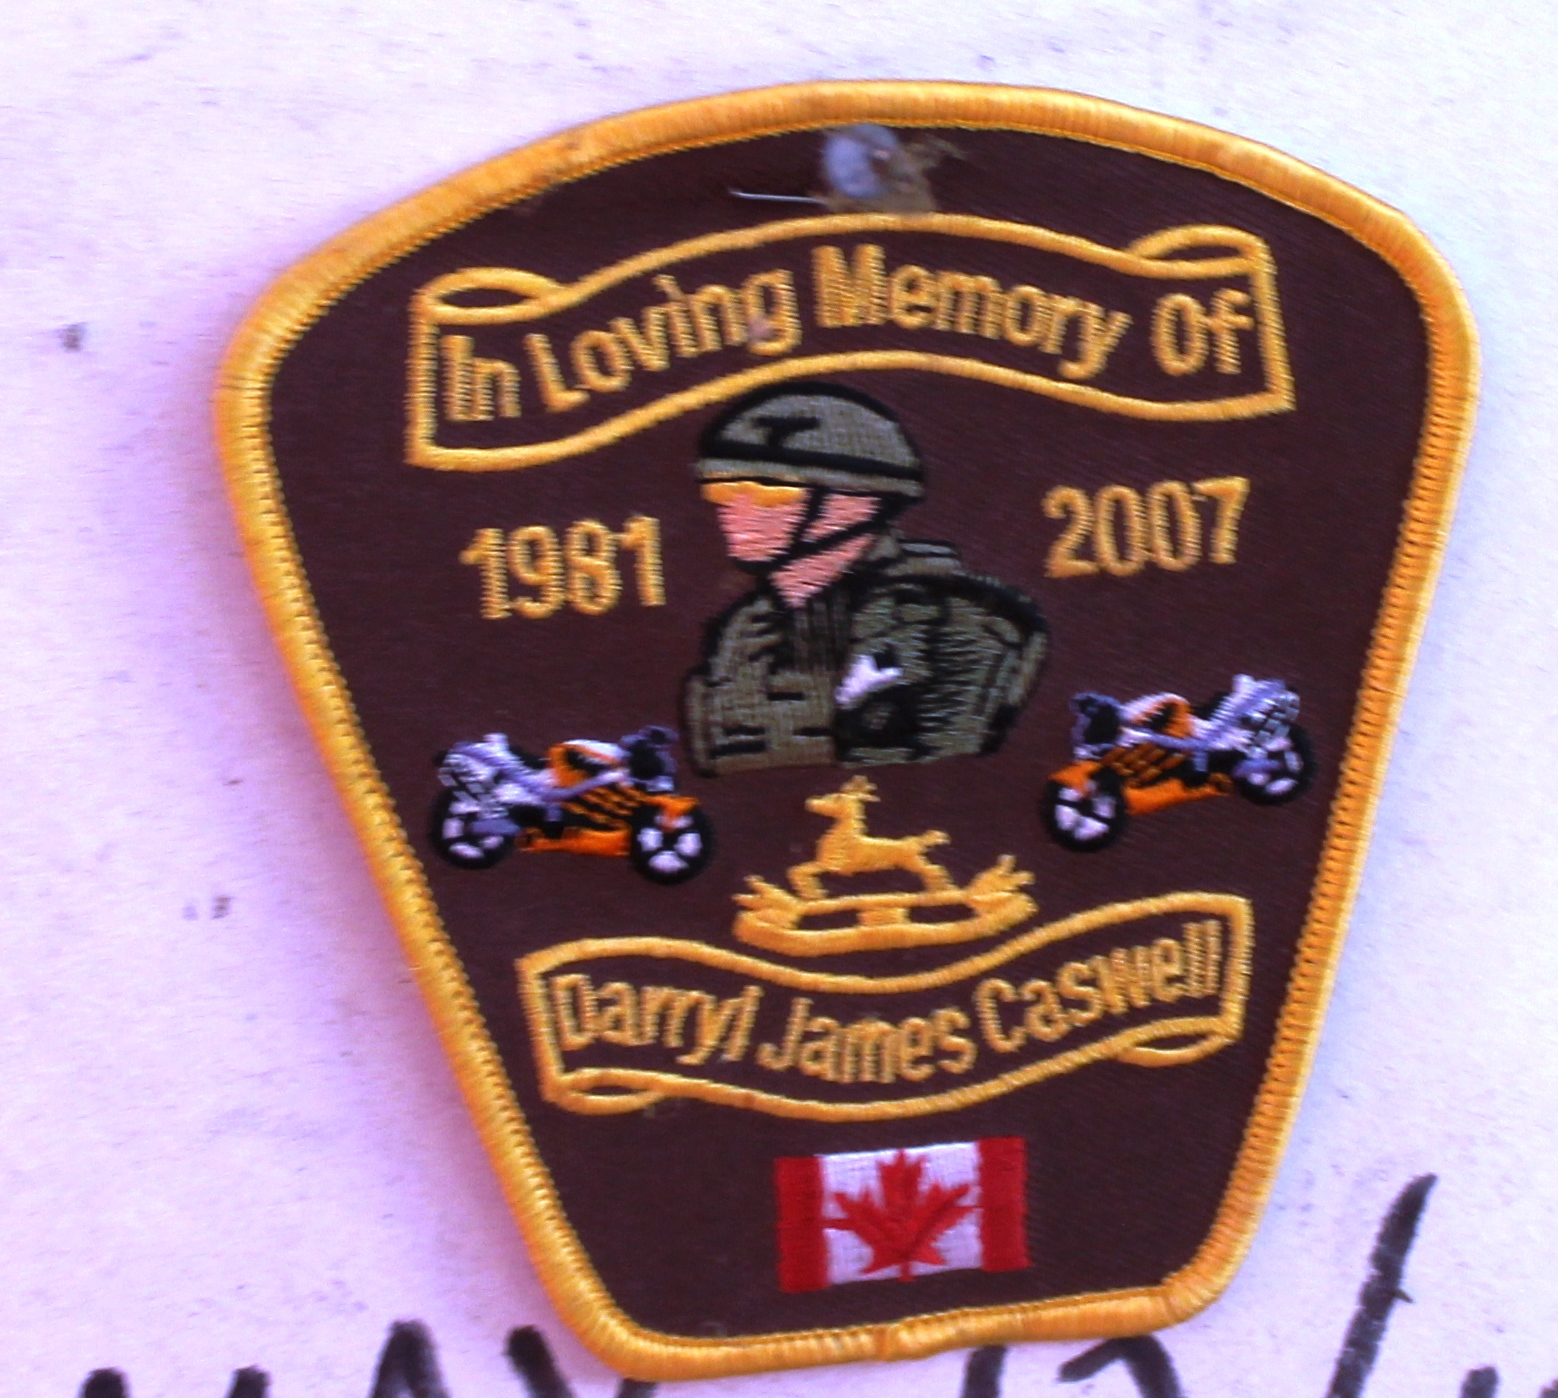 Memorial Badge– Observed during home inspection, 